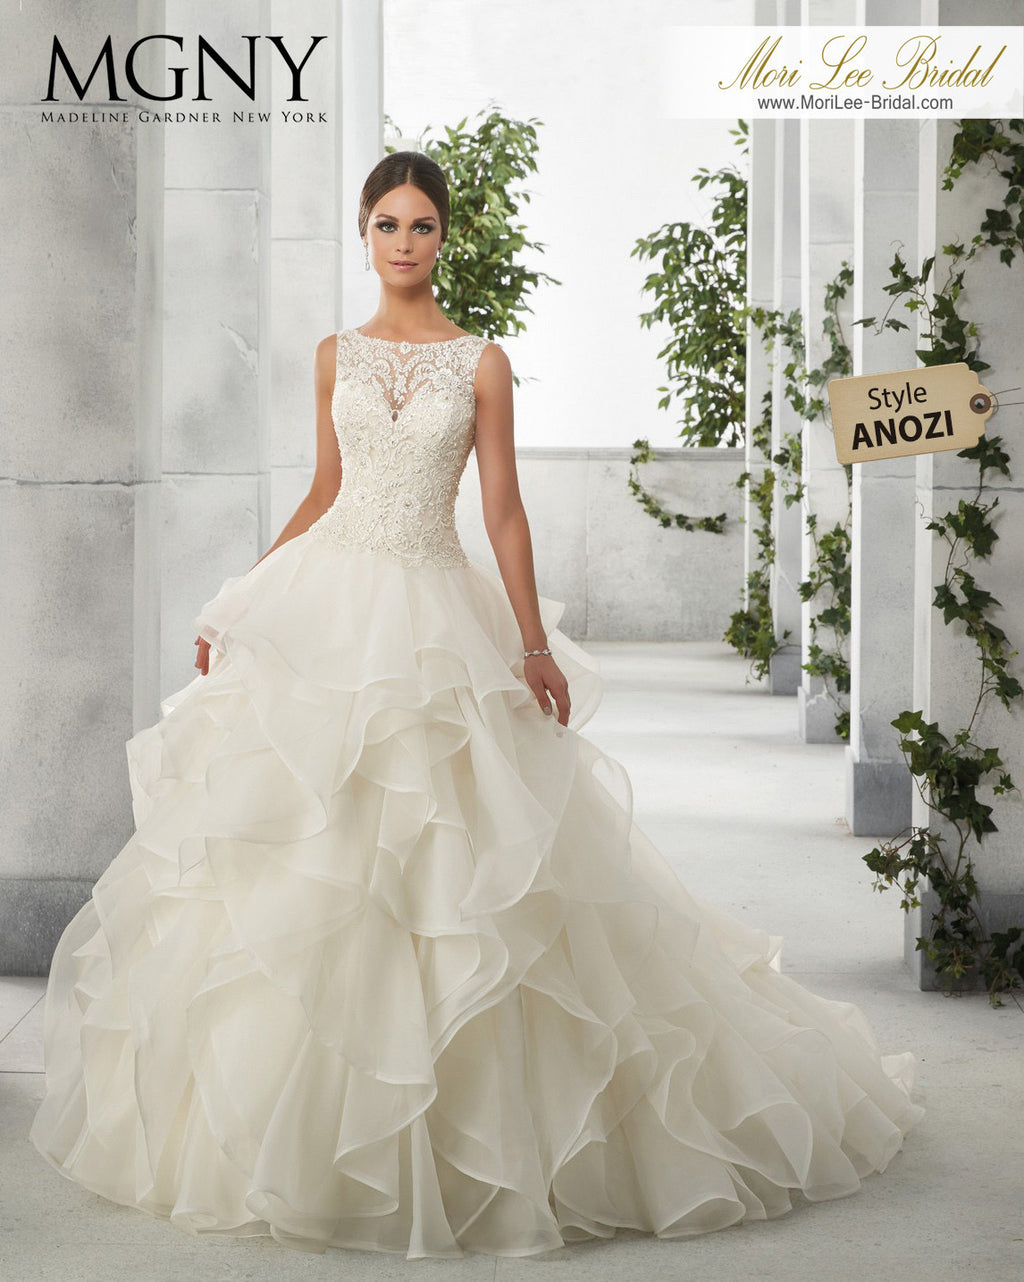 ANOZI - Mori Lee Bridal